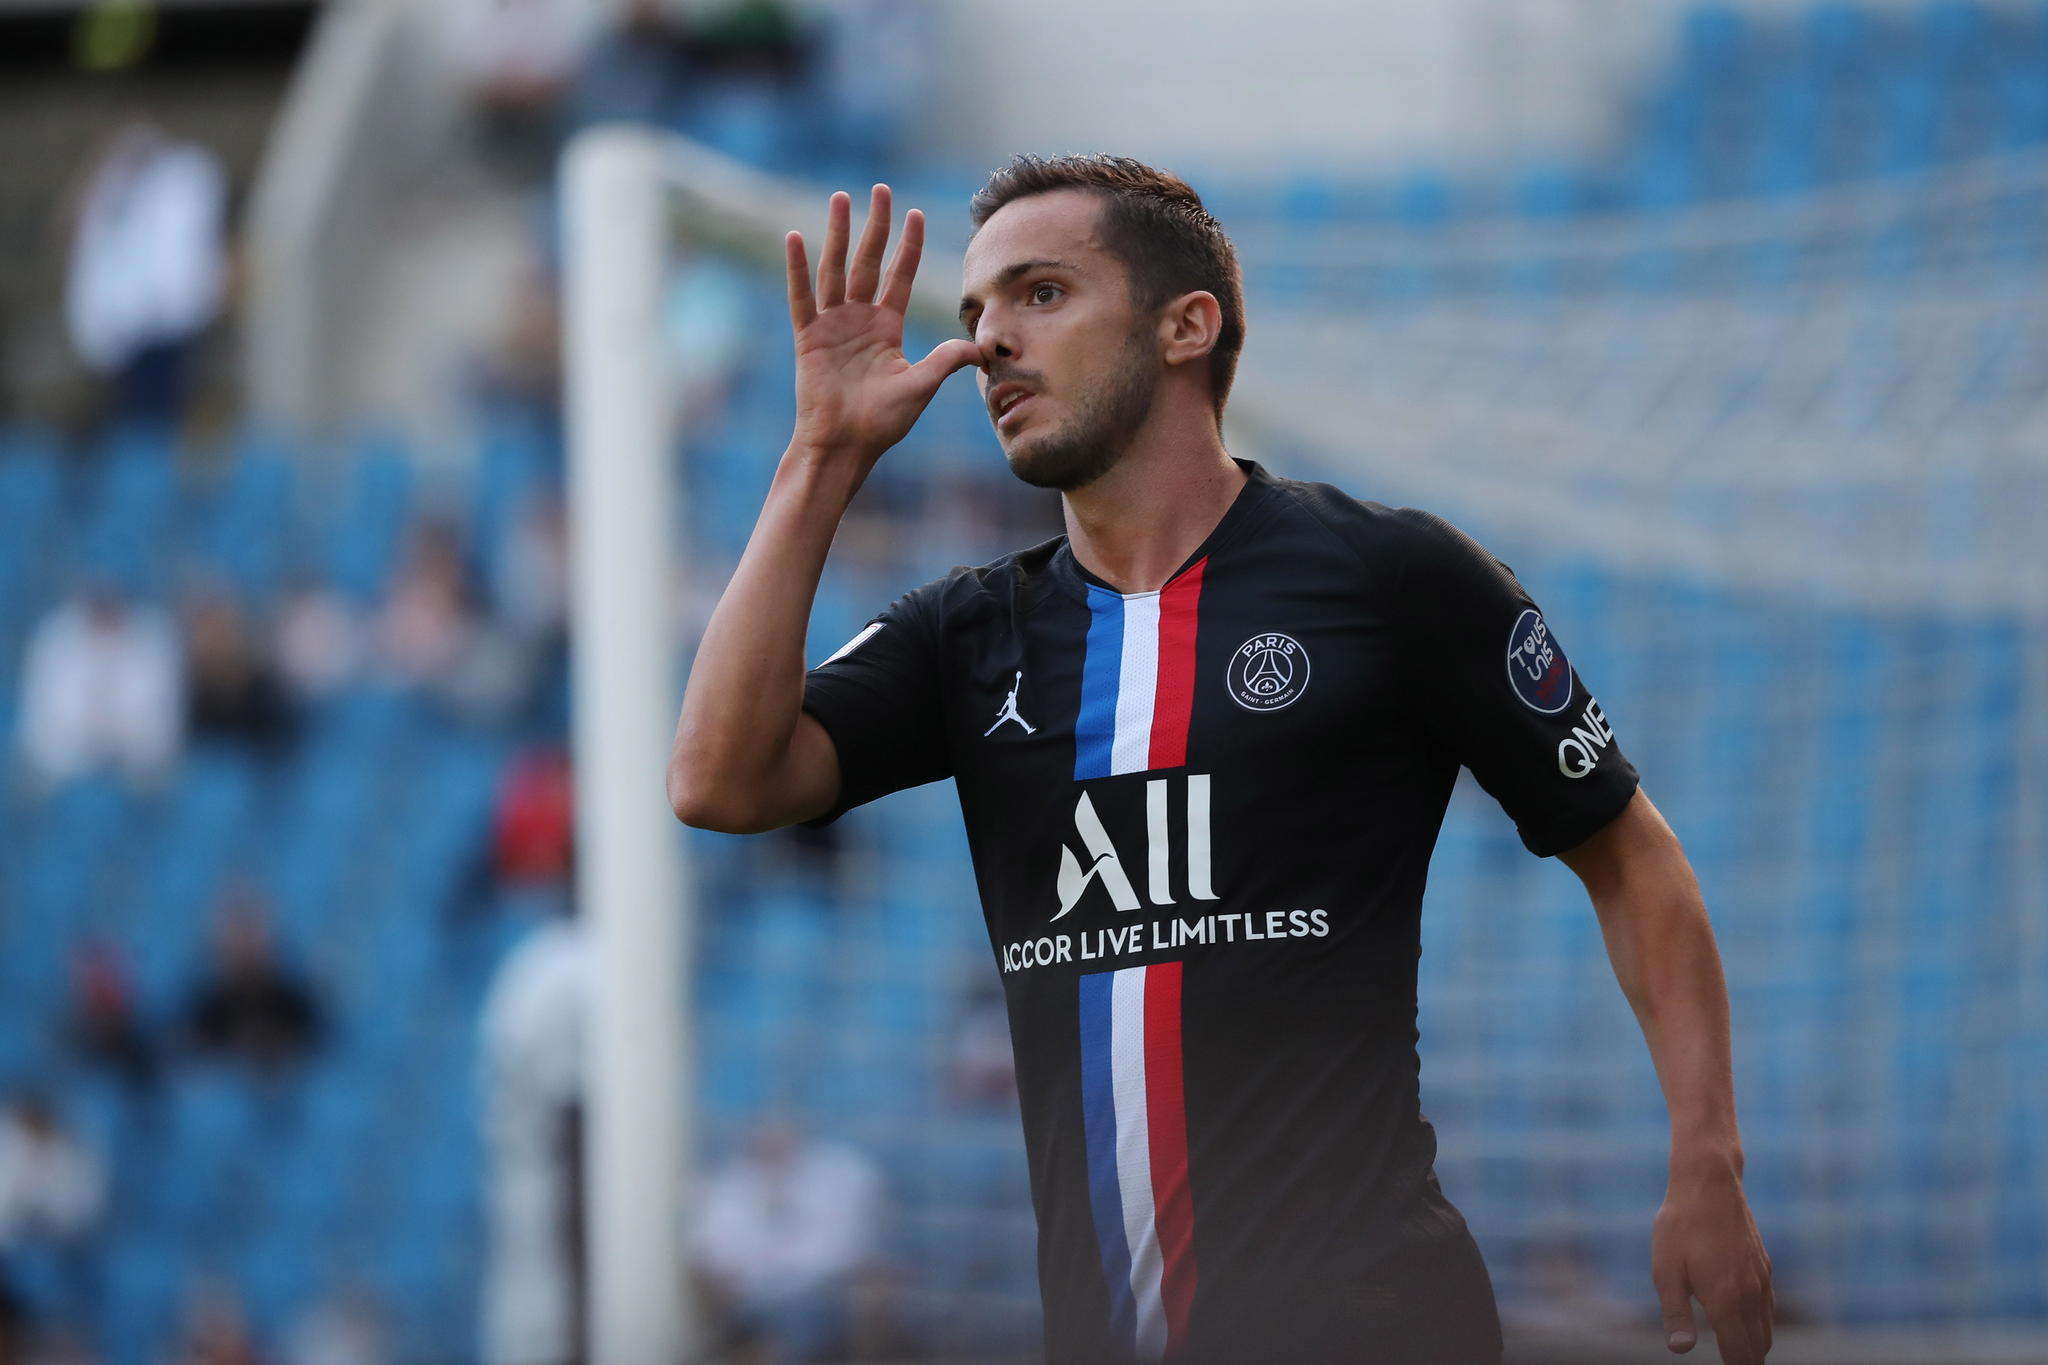 Le Havre (France), 12/07/2020.- Paris Saint Germains lt;HIT gt;Pablo lt;/HIT gt; lt;HIT gt;Sarabia lt;/HIT gt; reacts after his goal during the friendly soccer match between Le Havre AC and Paris Saint-Germain (PSG) at the Oceane stadium in Le Havre, France, 12 July 2020. The friendly match is the first to be played in front of a crowd of 5,000 spectators since March and the nationwide lockdown due to the ongoing coronavirus COVID-19 pandemic. (Futbol, Amistoso, Francia) EFE/EPA/CHRISTOPHE PETIT TESSON